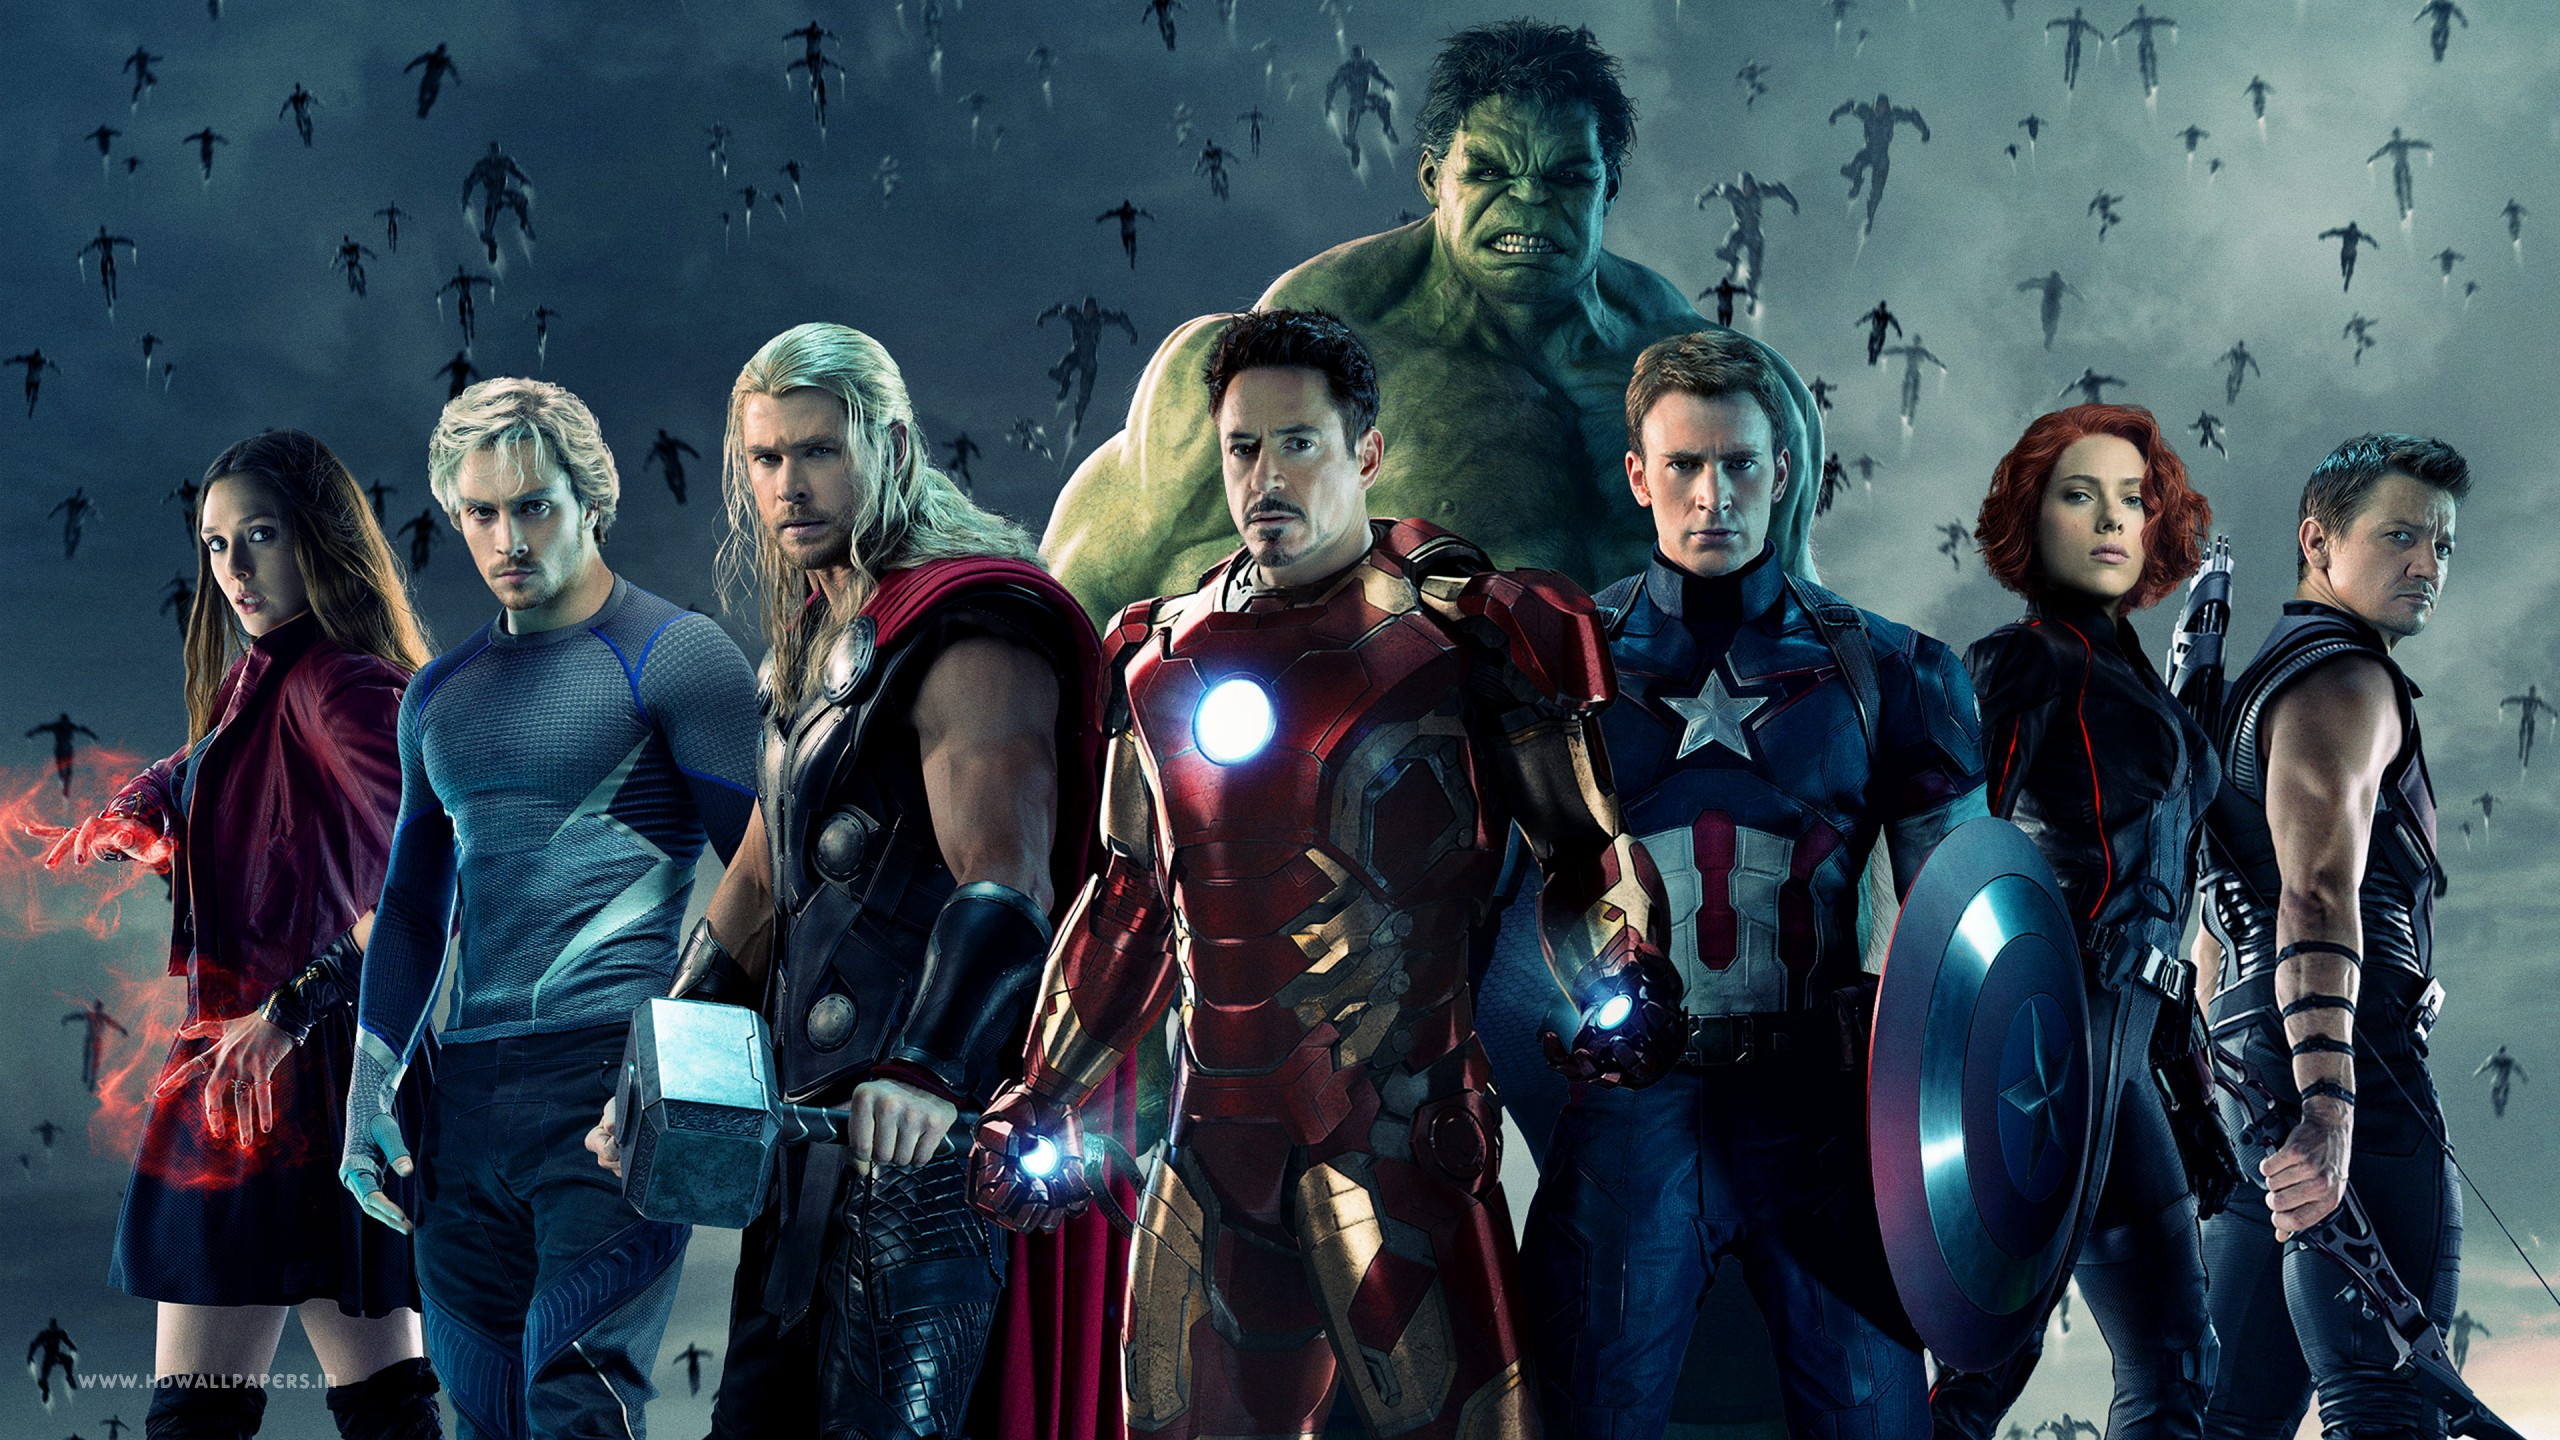 3d Superhero Wallpaper For Android Avengers Age Of Ultron 2015 Movie Wallpapers Hd